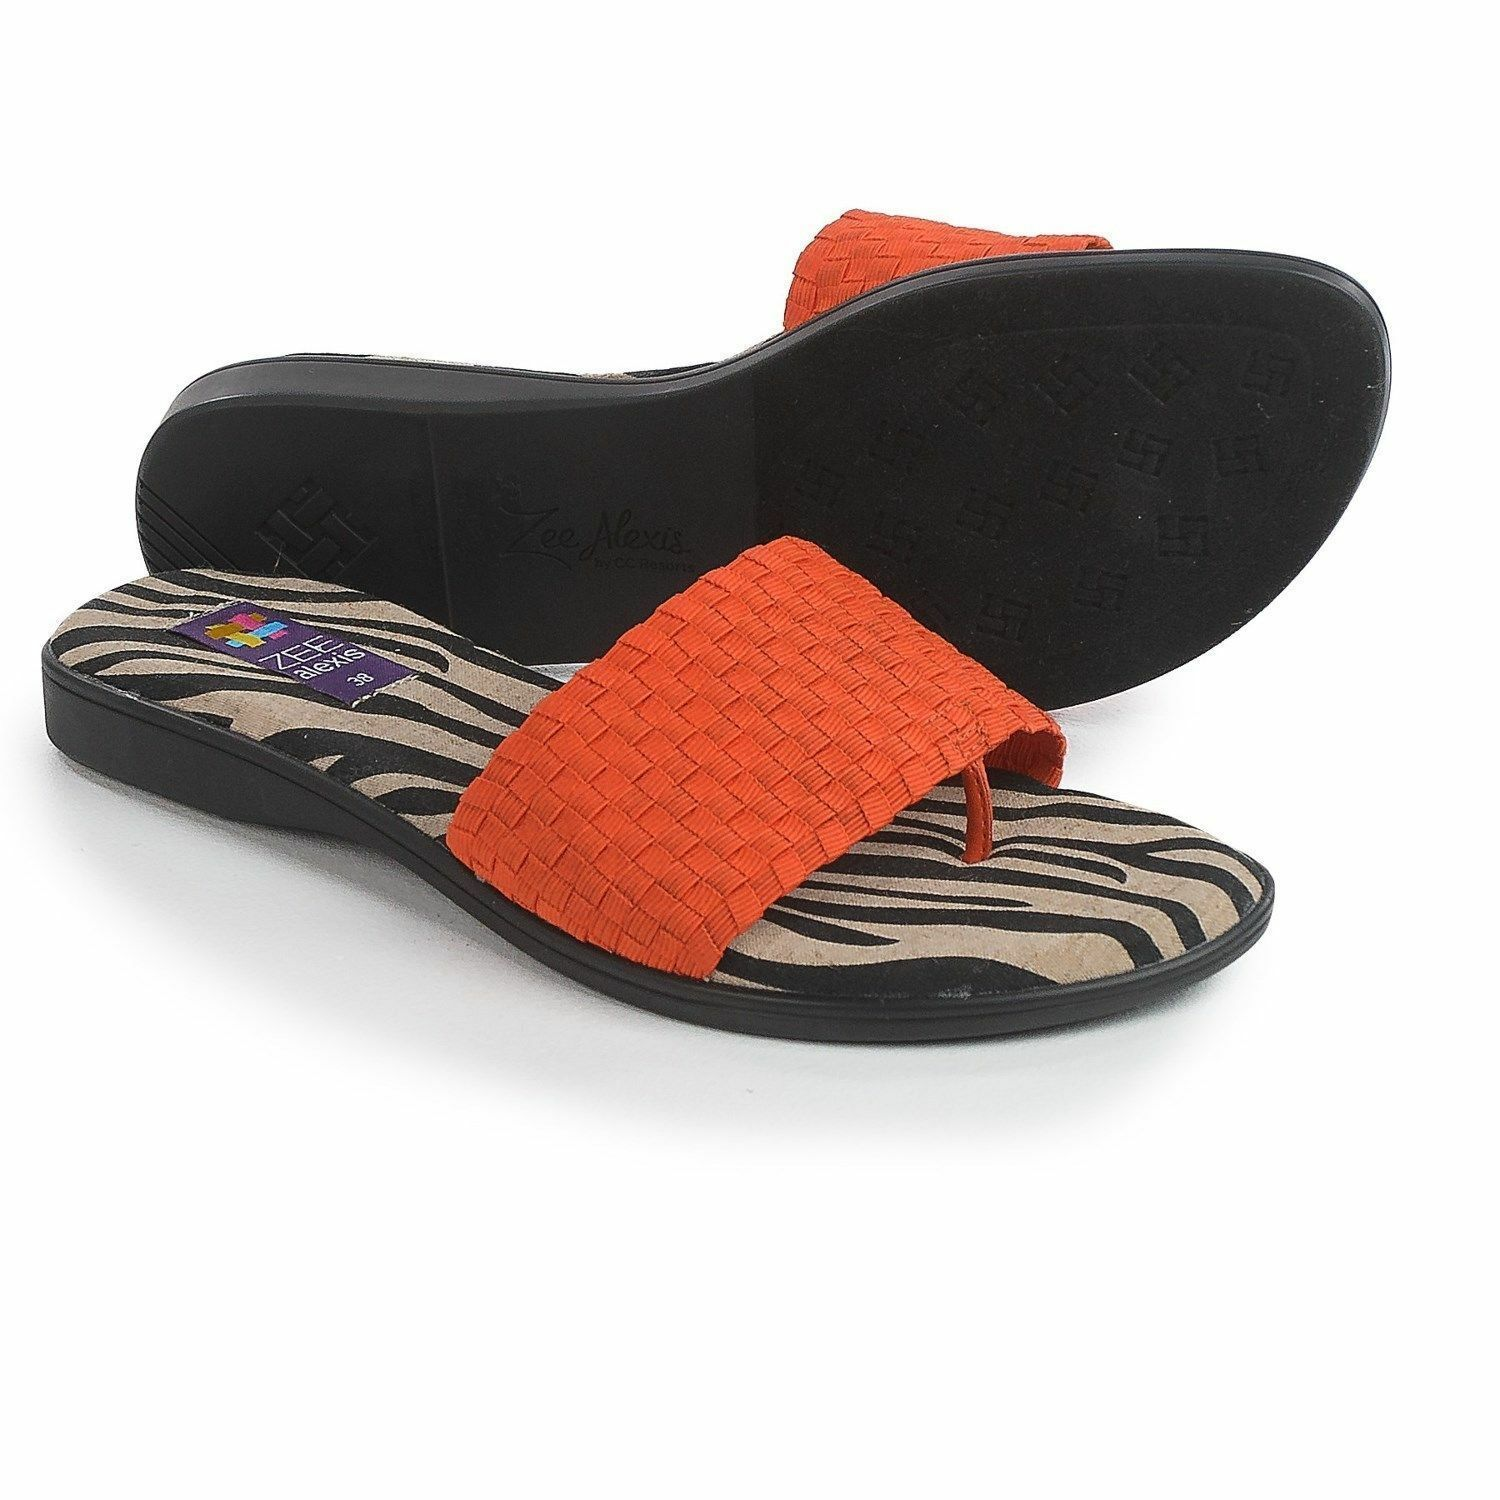 ZEE ALEXIS NIB Womens GEM Sandals Flip Flops Slides 39/ 8-8.5 PAPAYA Orange